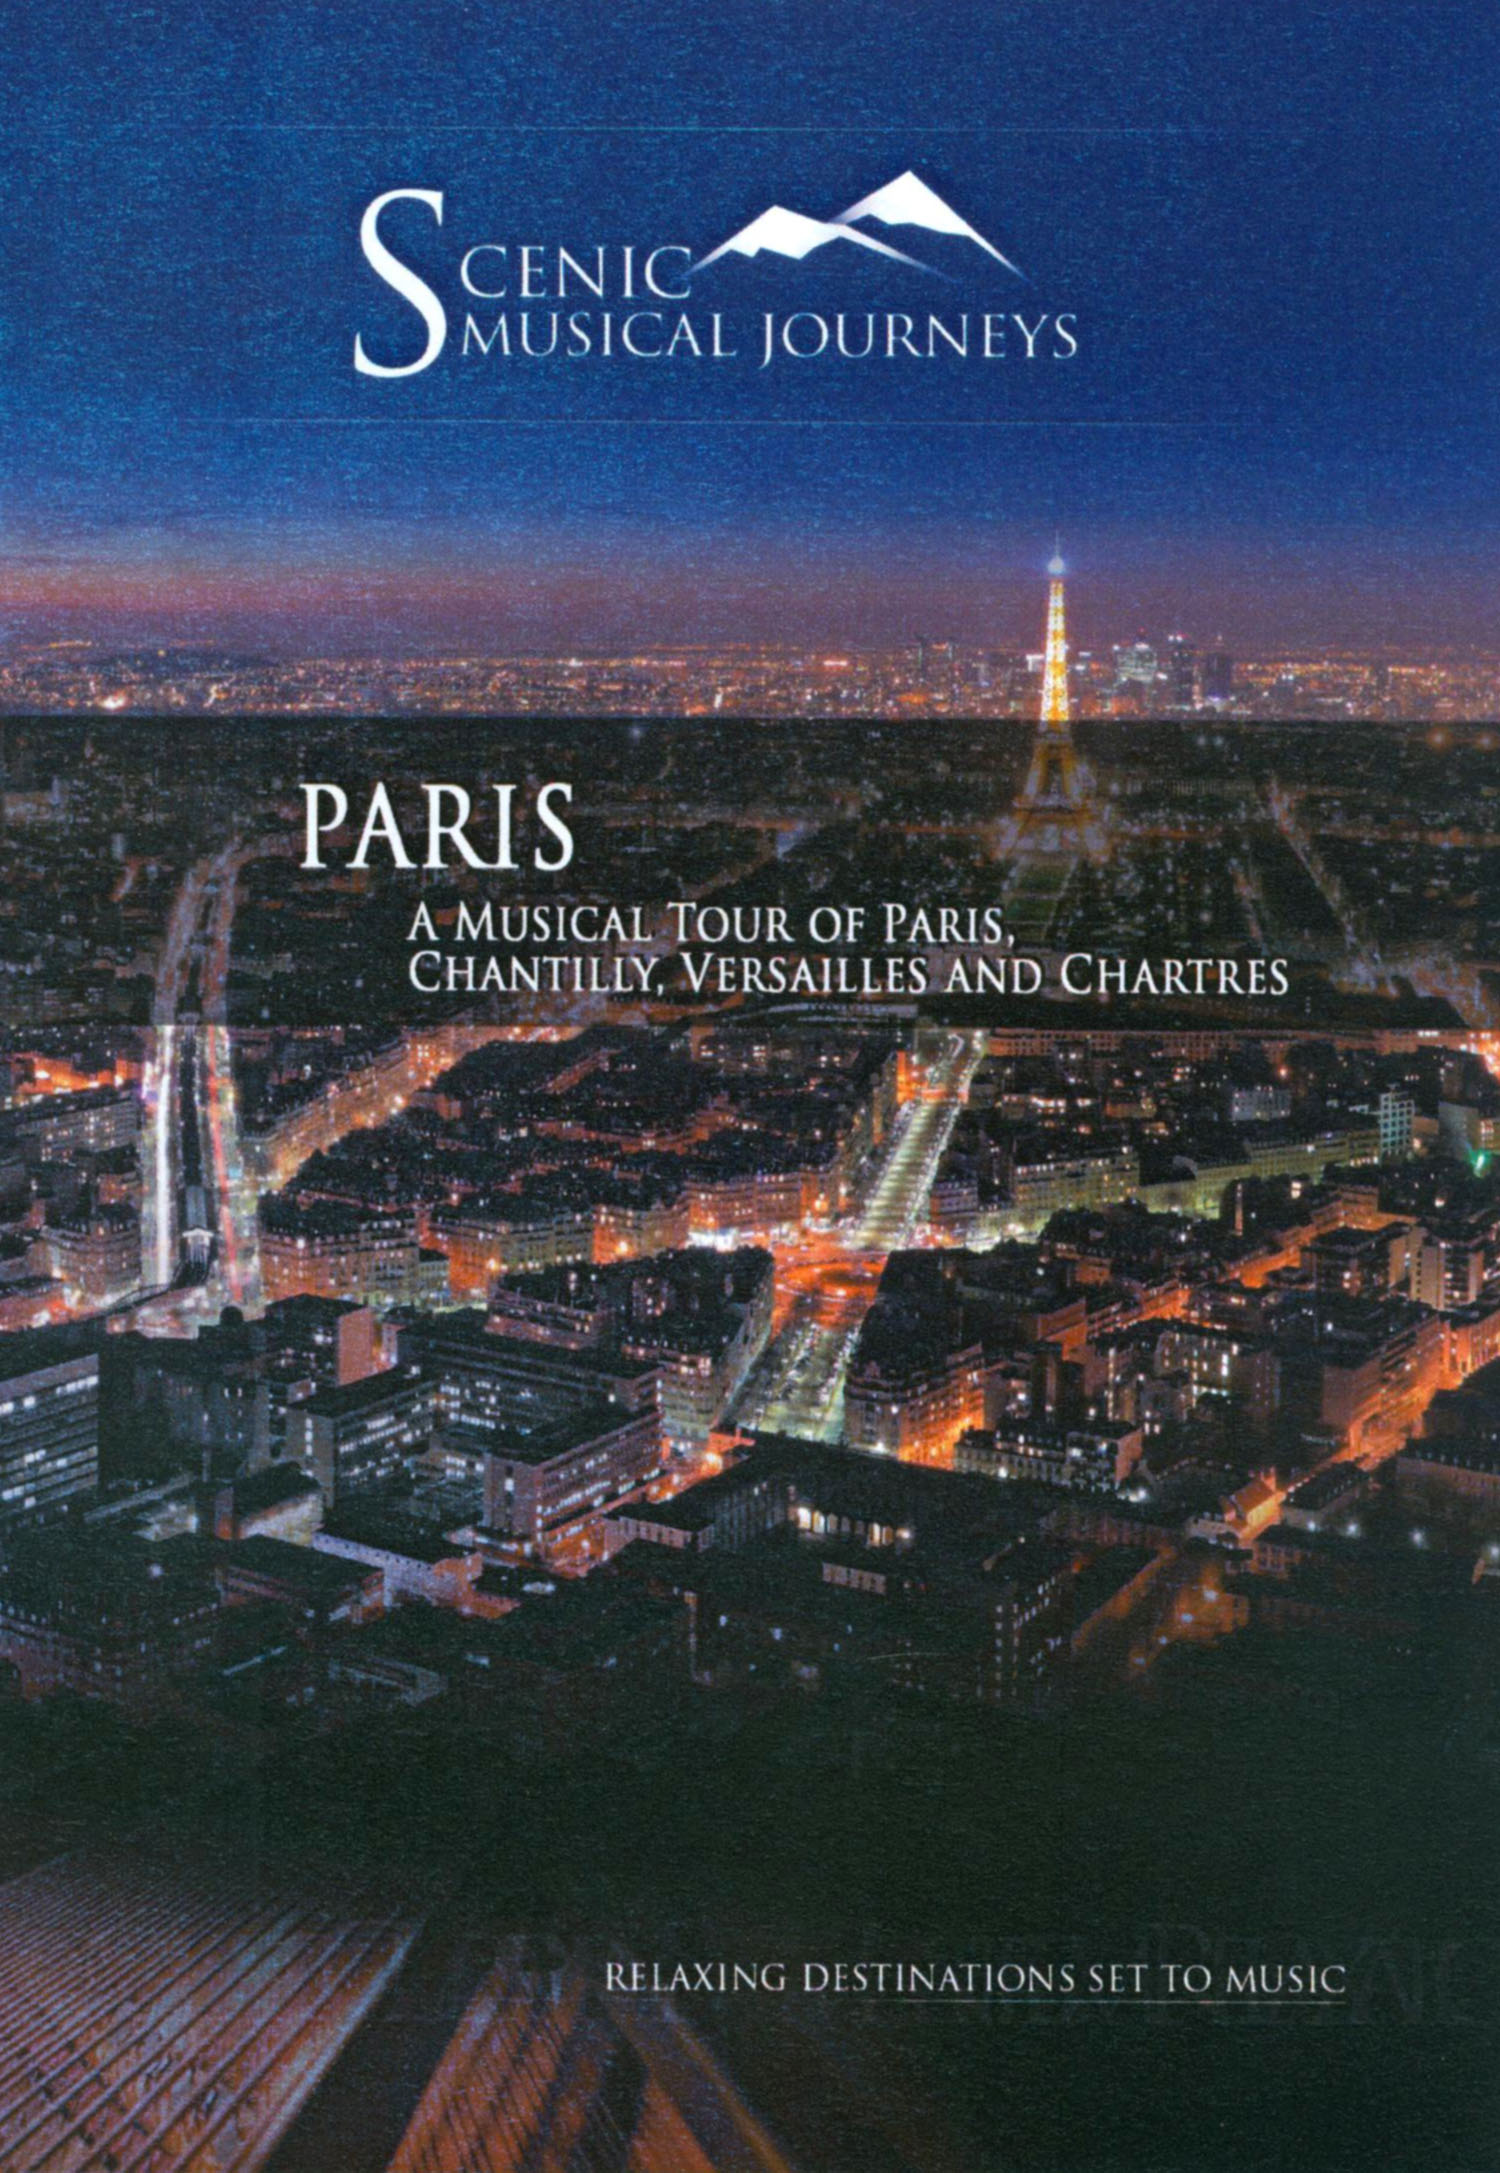 Scenic Musical Journeys: Paris - A Musical Tour of Paris, Chantilly, Versailles and Chartres